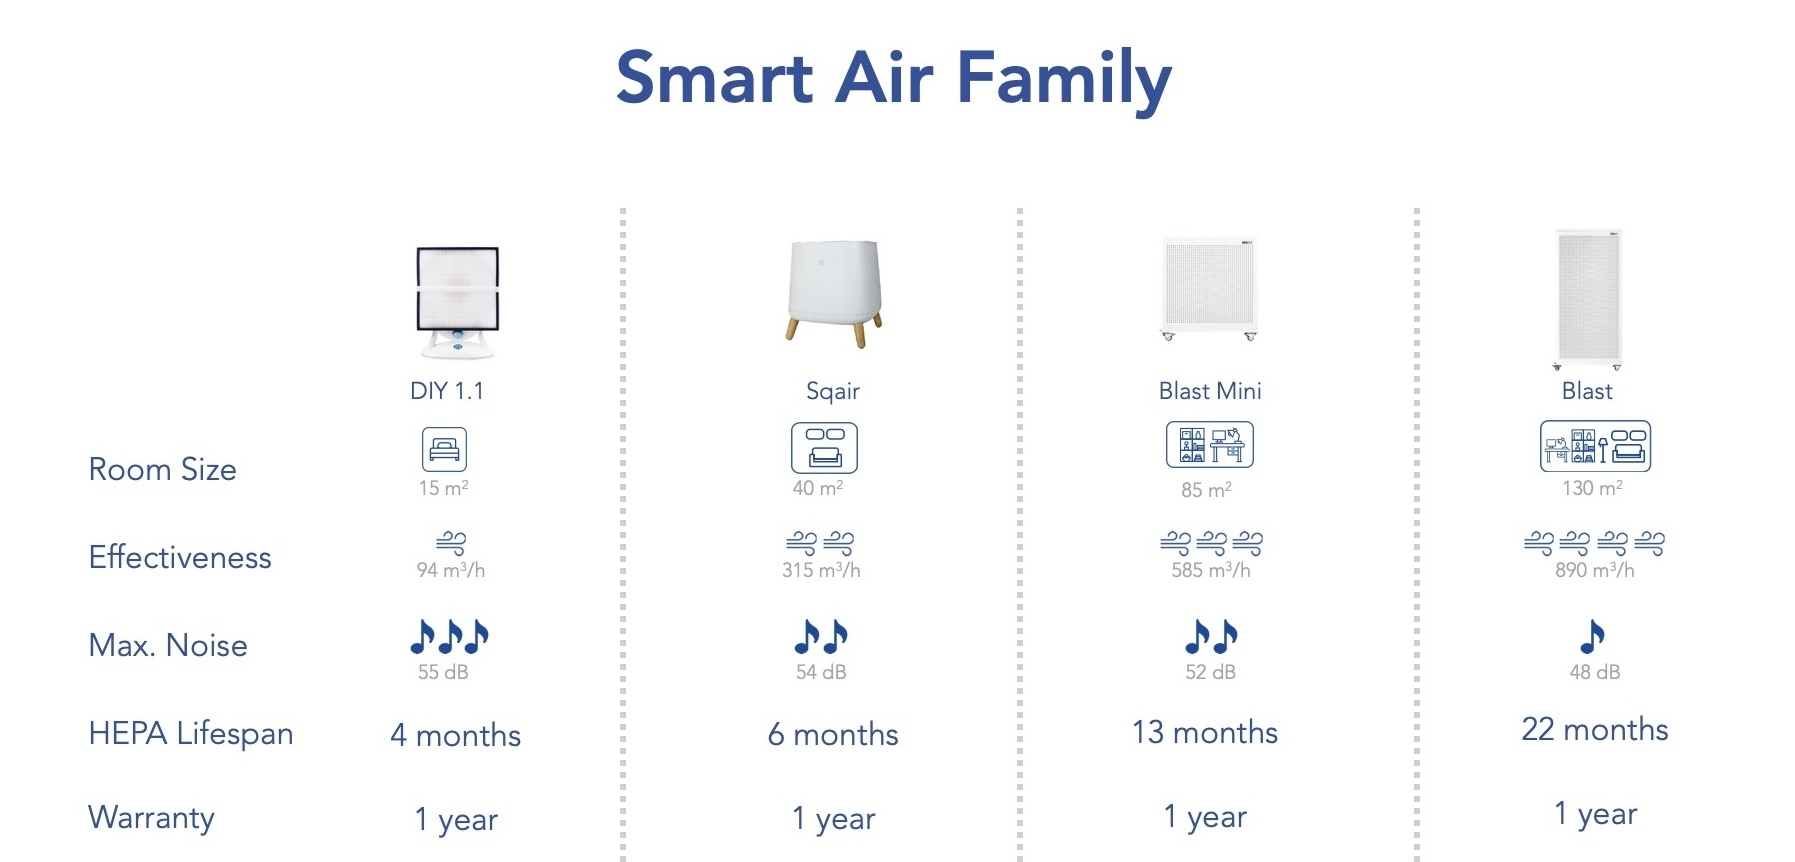 Smart Air Family